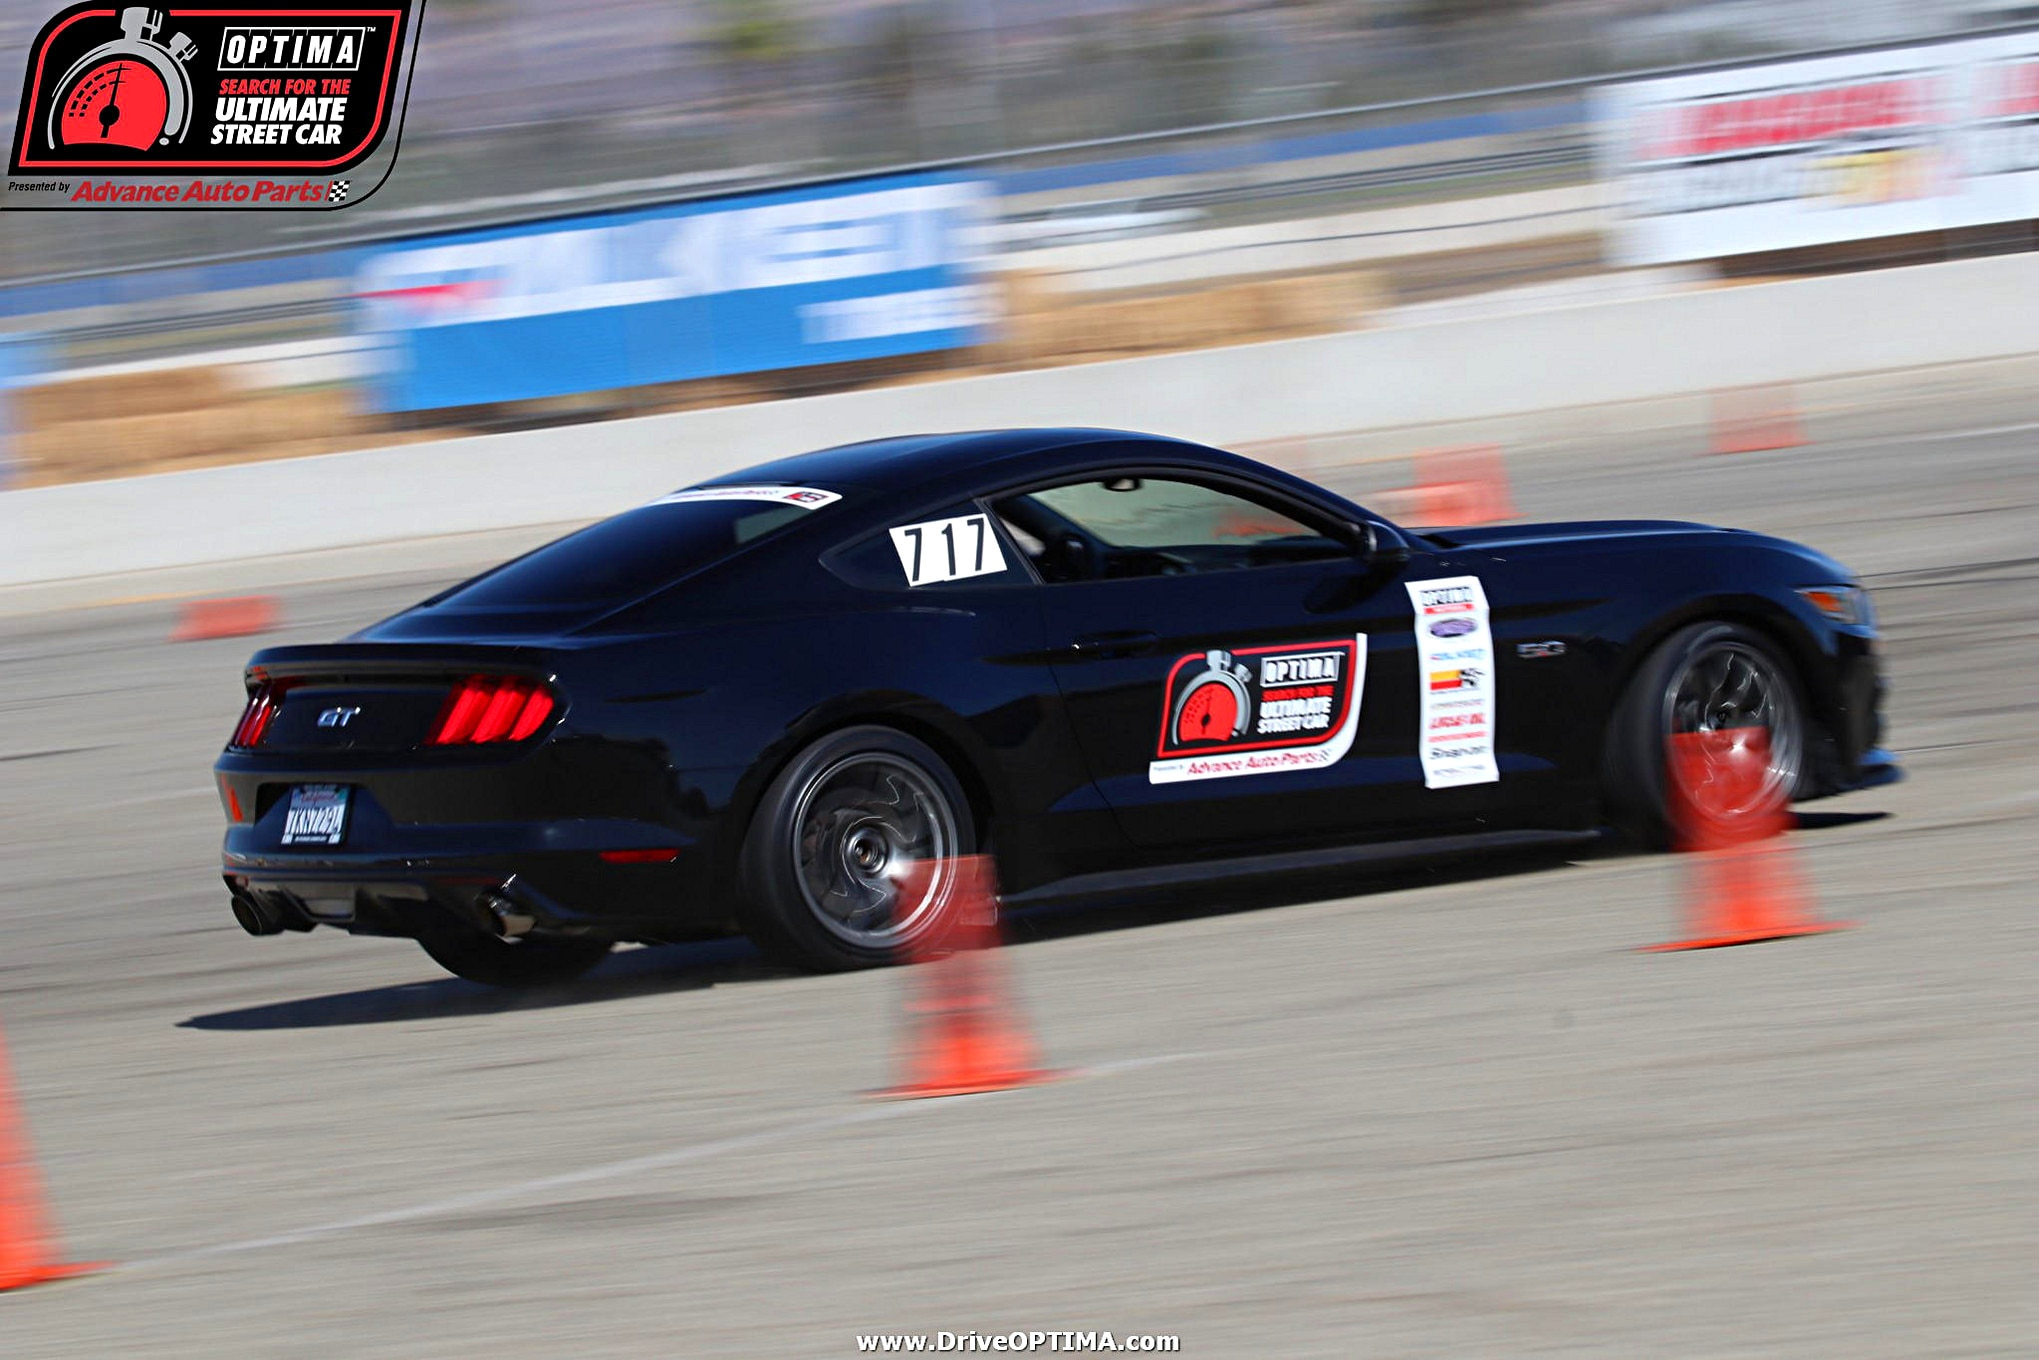 MMFF Frank Pacheco 2015 Ford Mustang Saturday DriveOPTIMA Fontana 2016 161